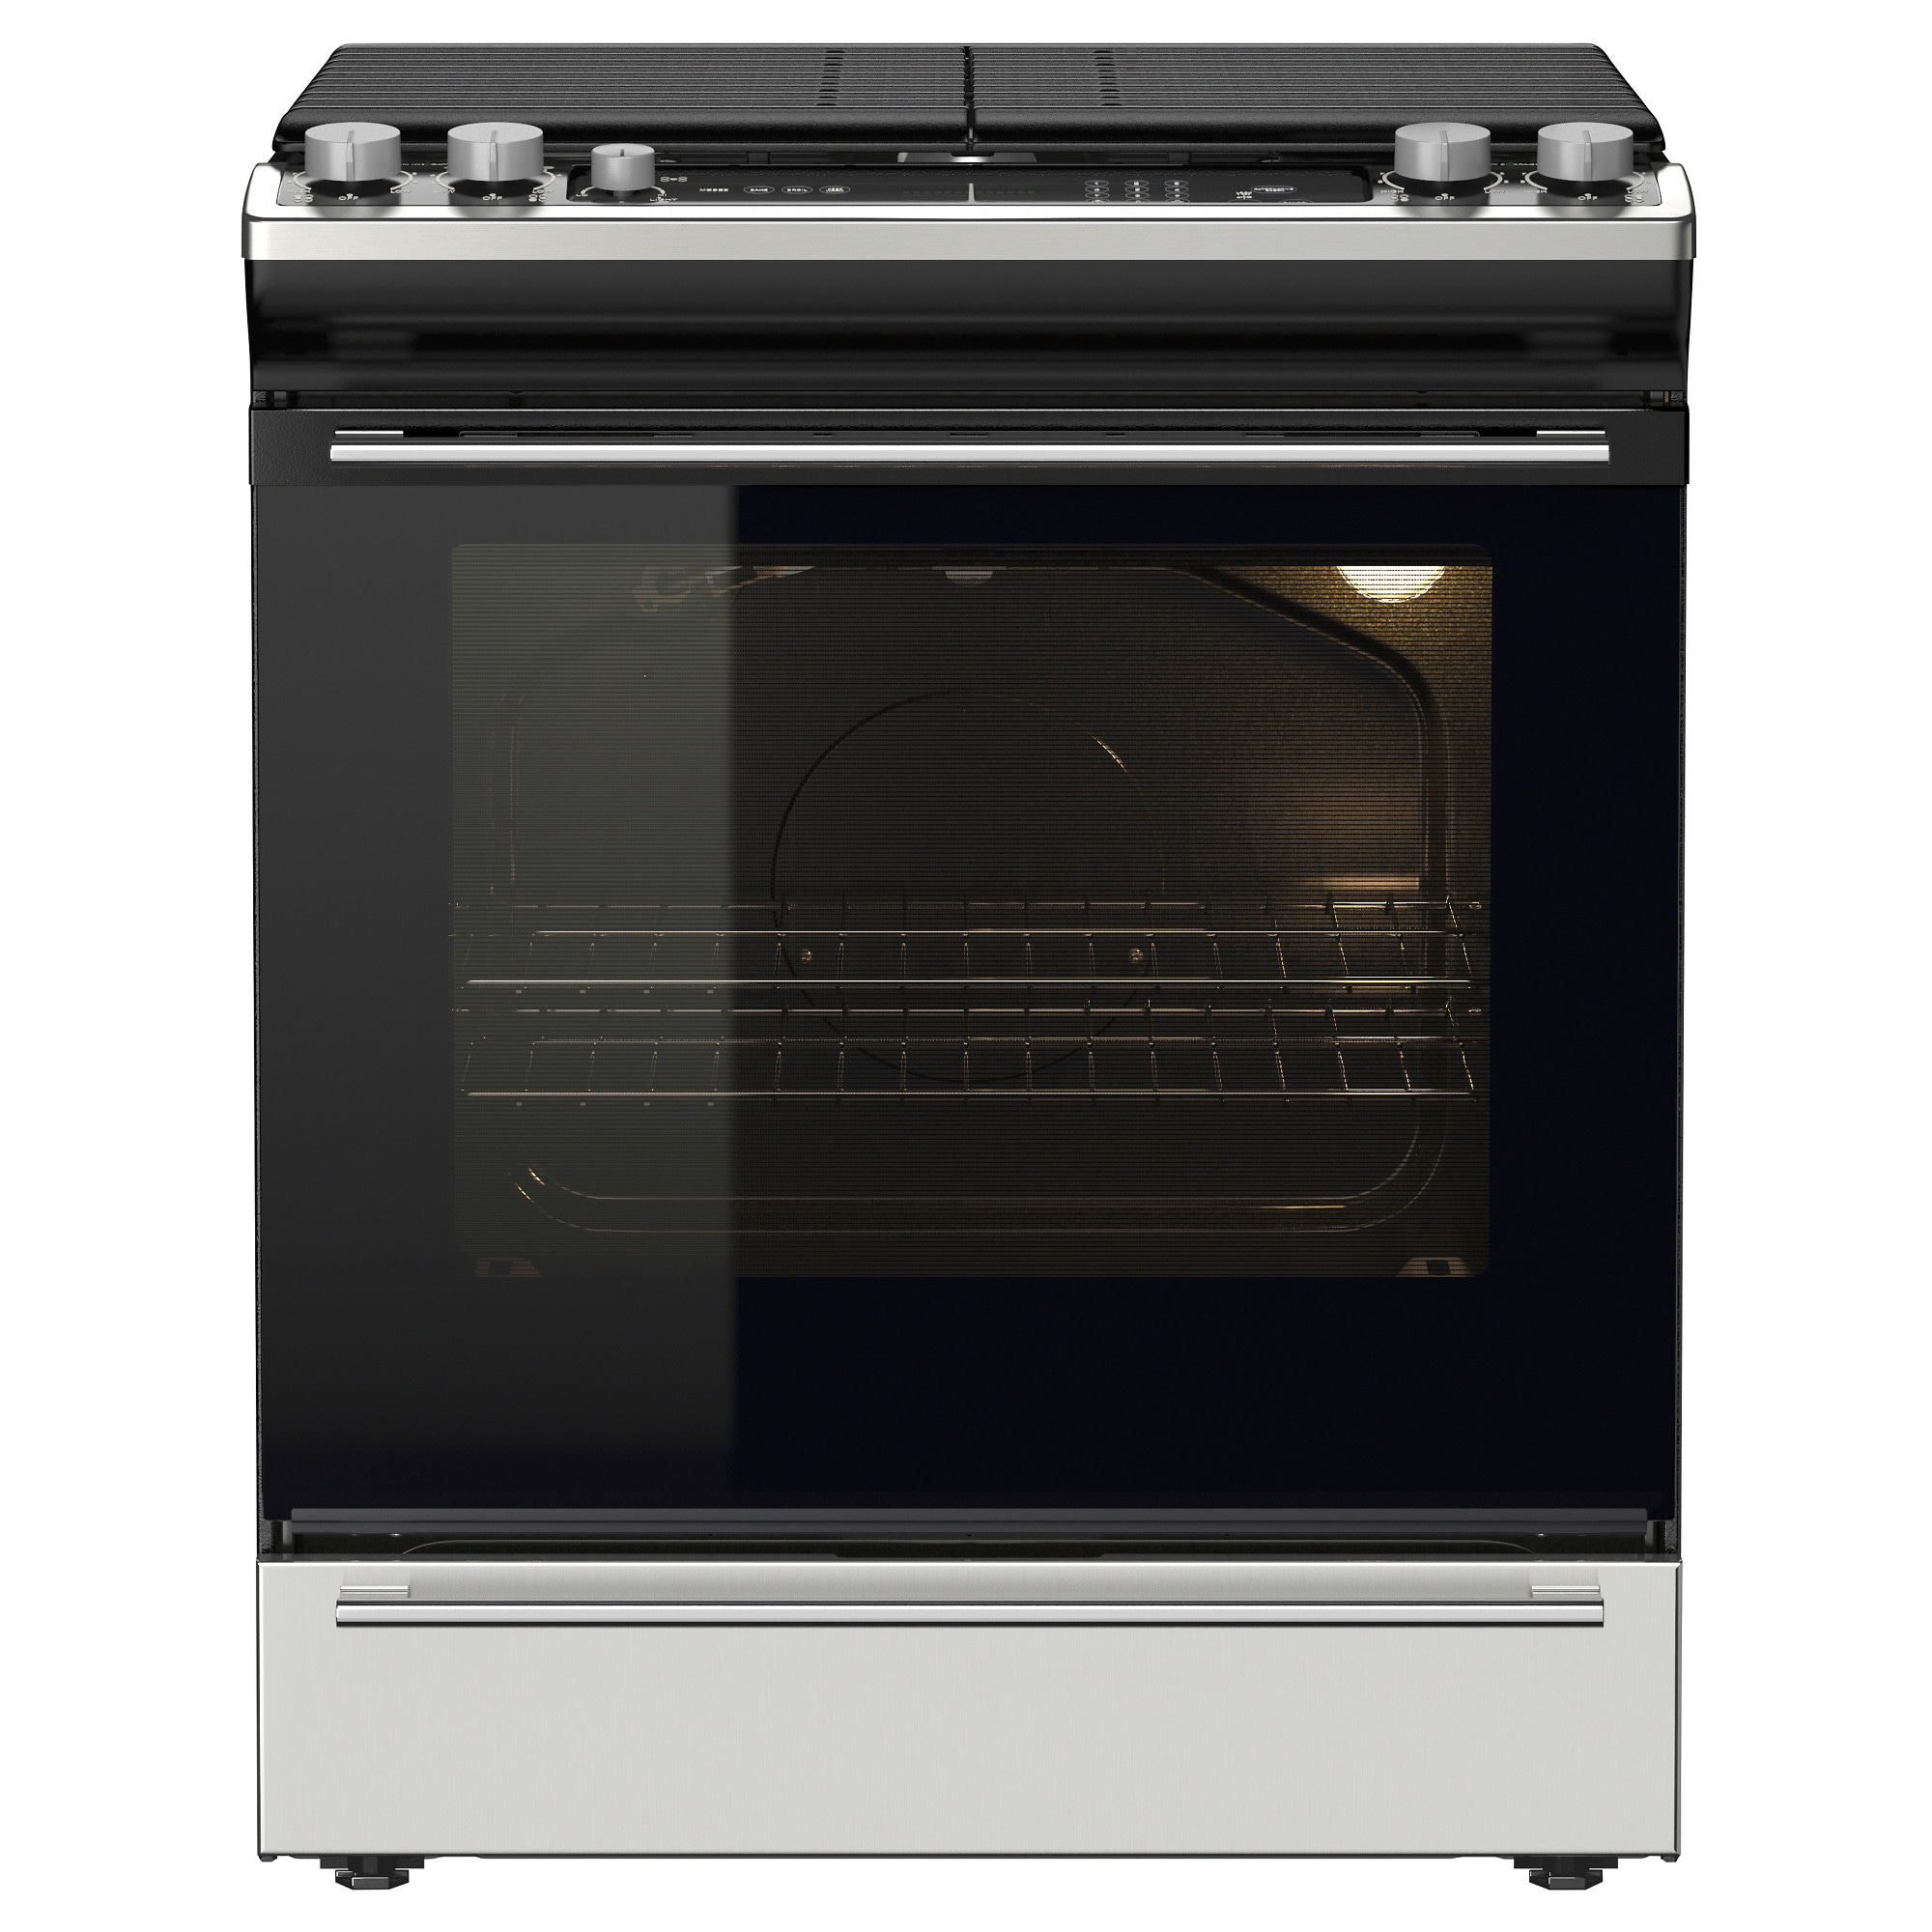 NUTID Slide In Range With Gas Cooktop